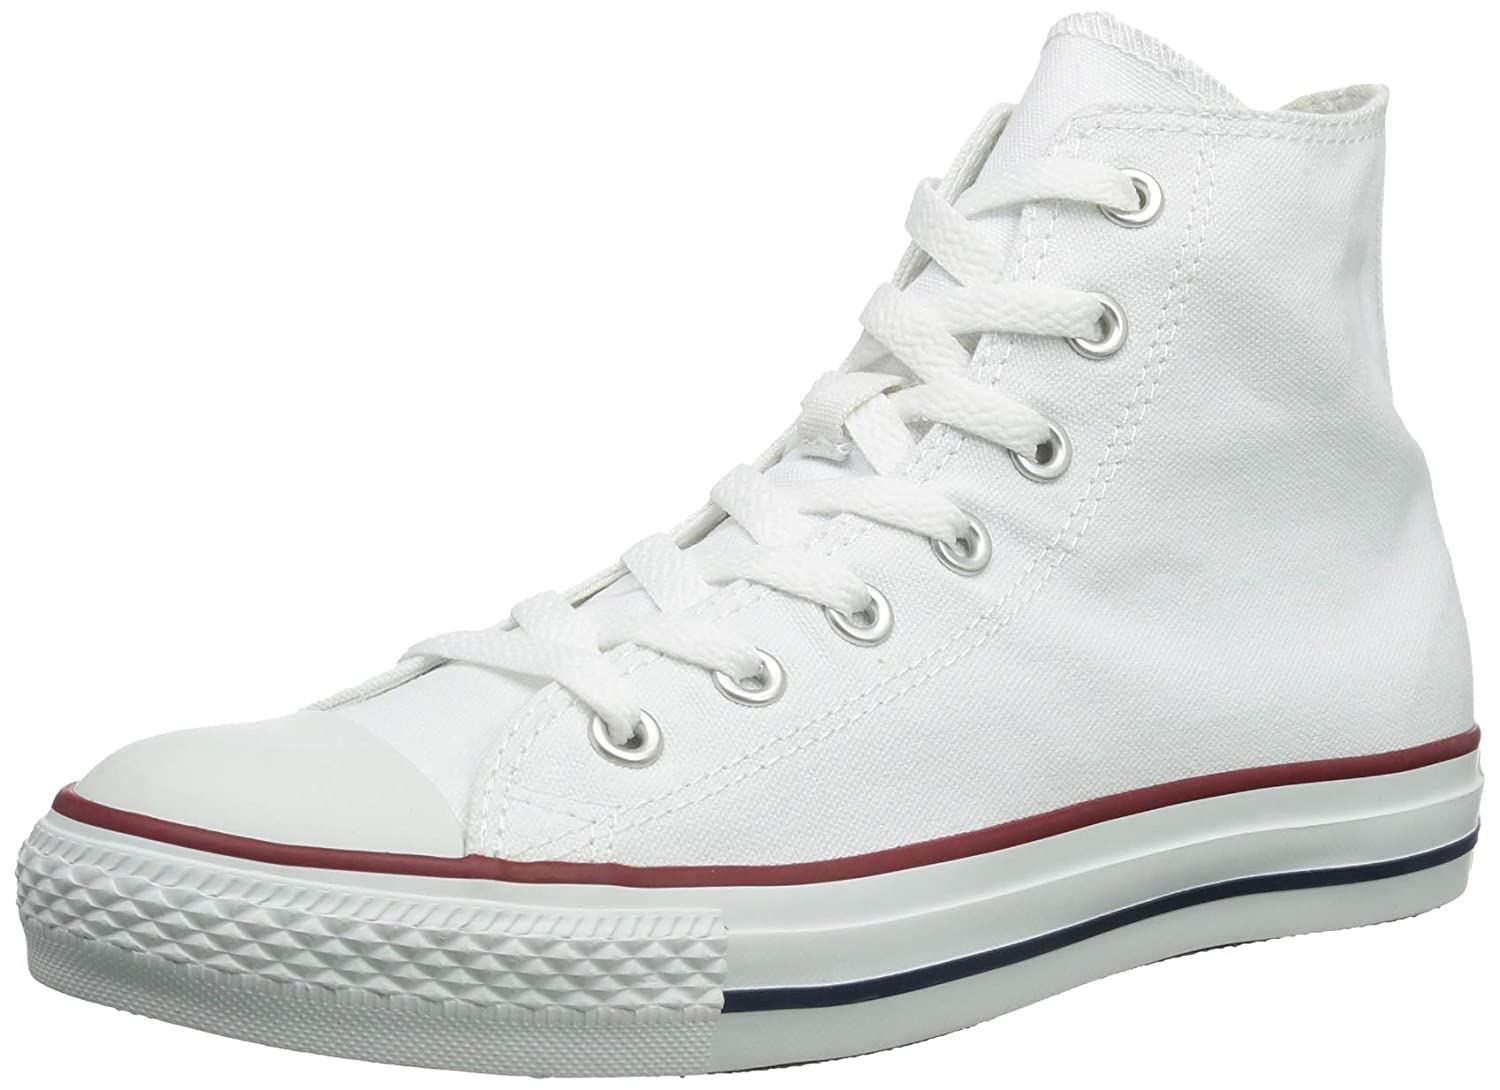 99d9db39f7 Amazon.com | Converse Chuck Taylor All Star High Top Sneaker | Fashion  Sneakers